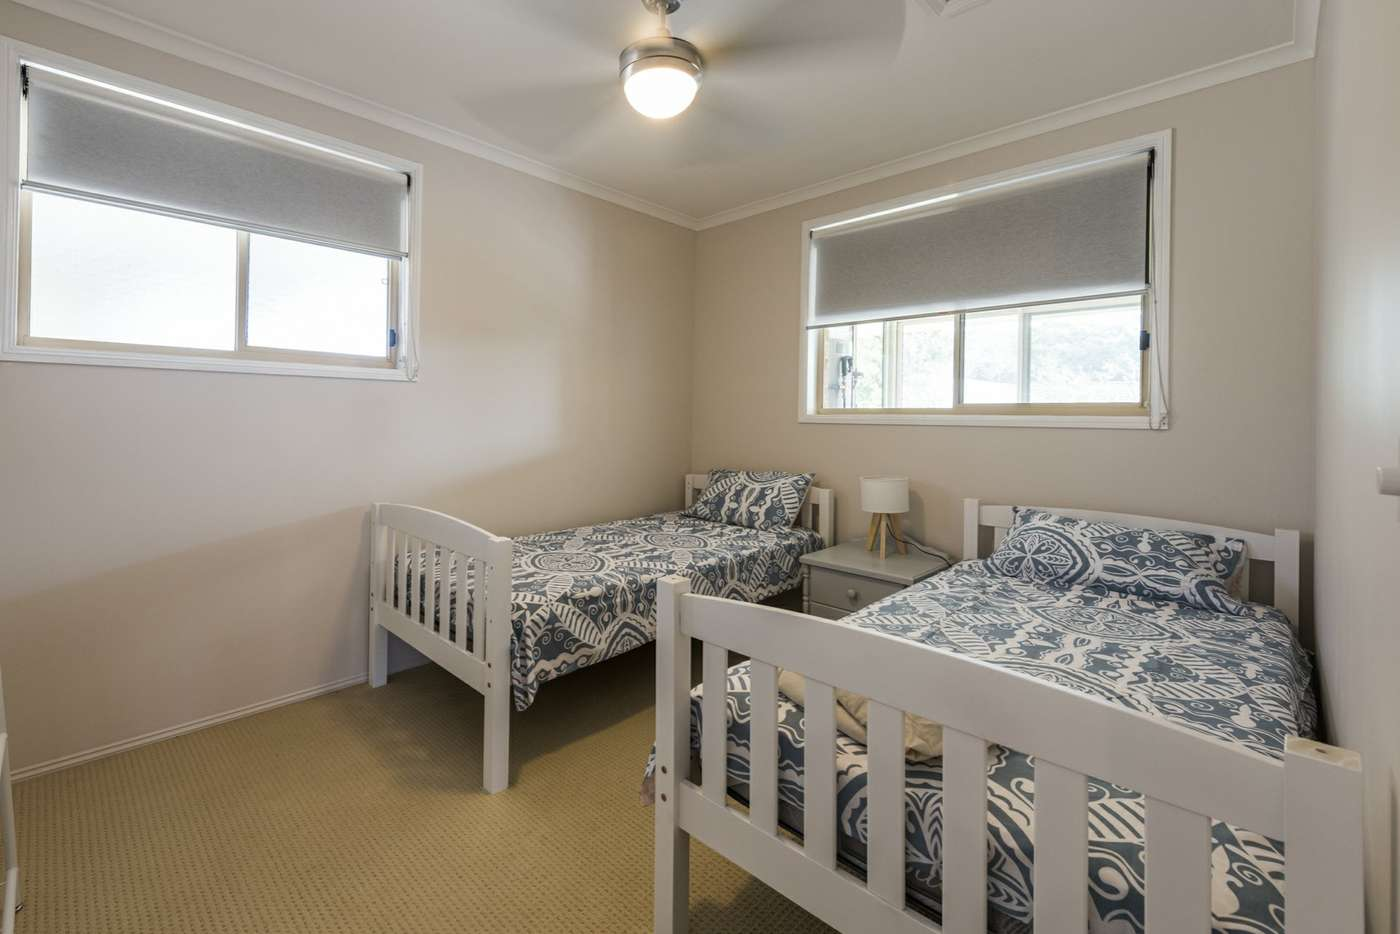 Seventh view of Homely house listing, 31 Melville Street, Iluka NSW 2466